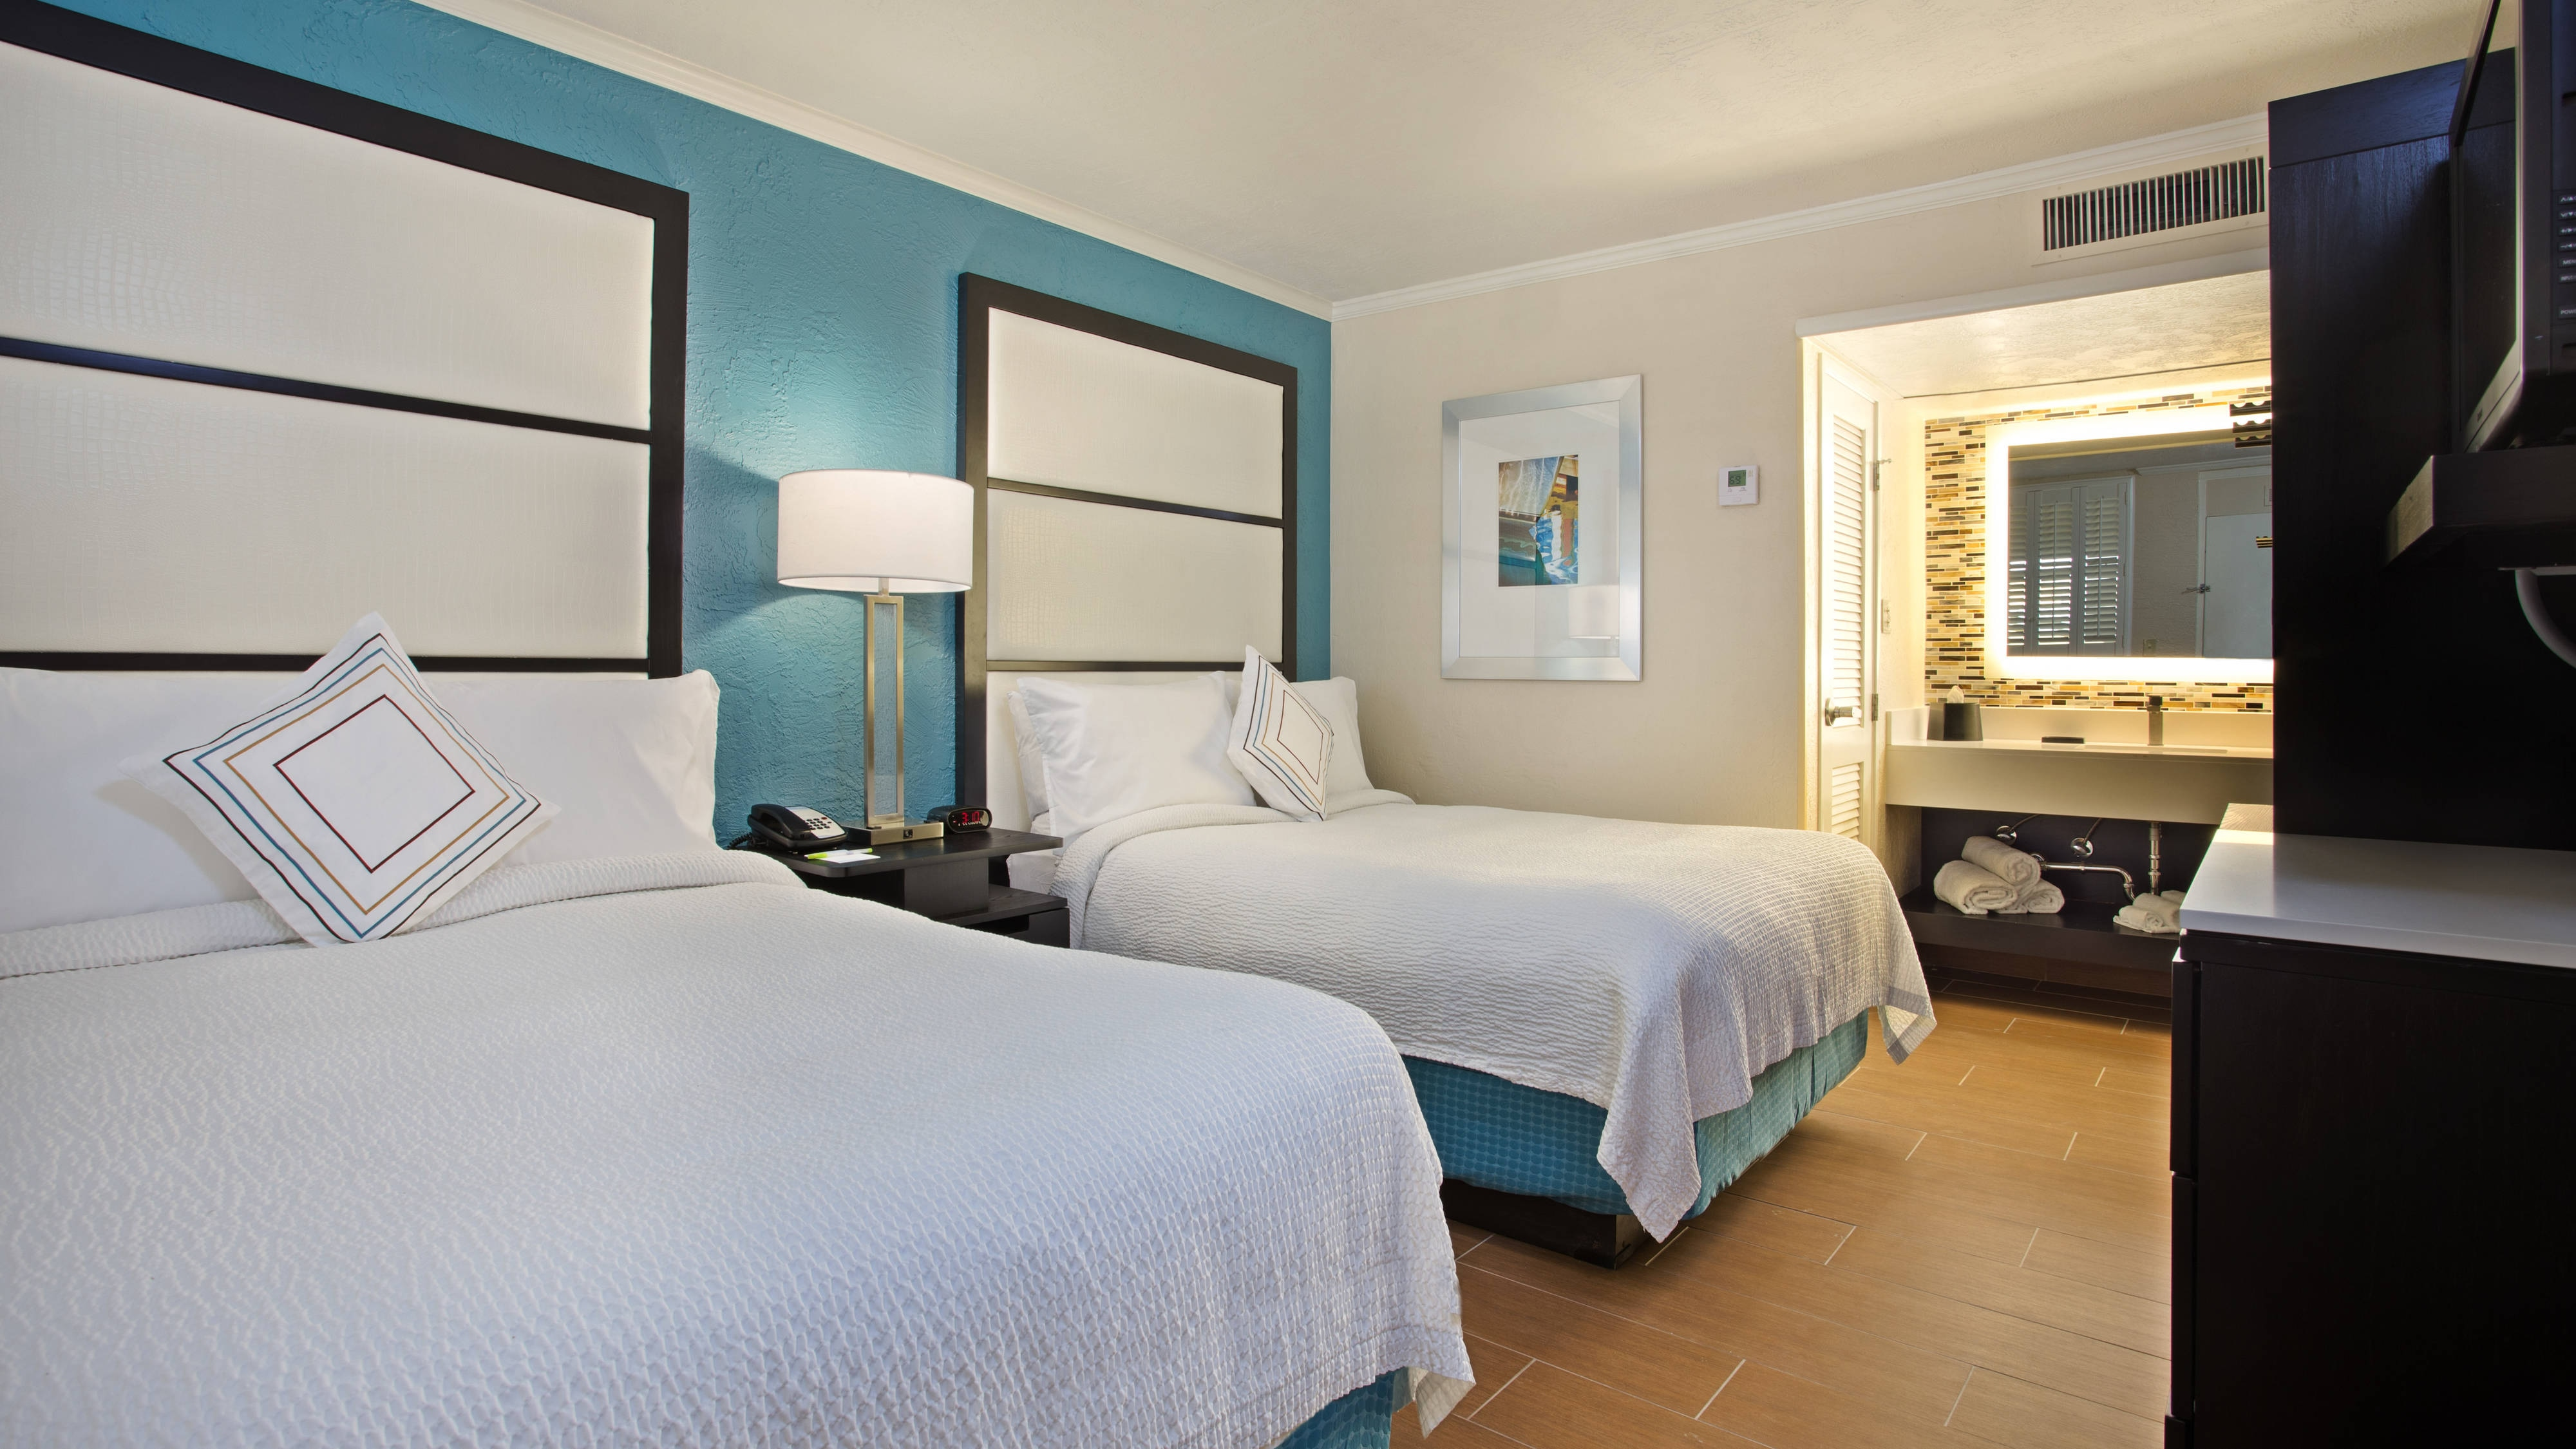 Key West Hotel Rooms